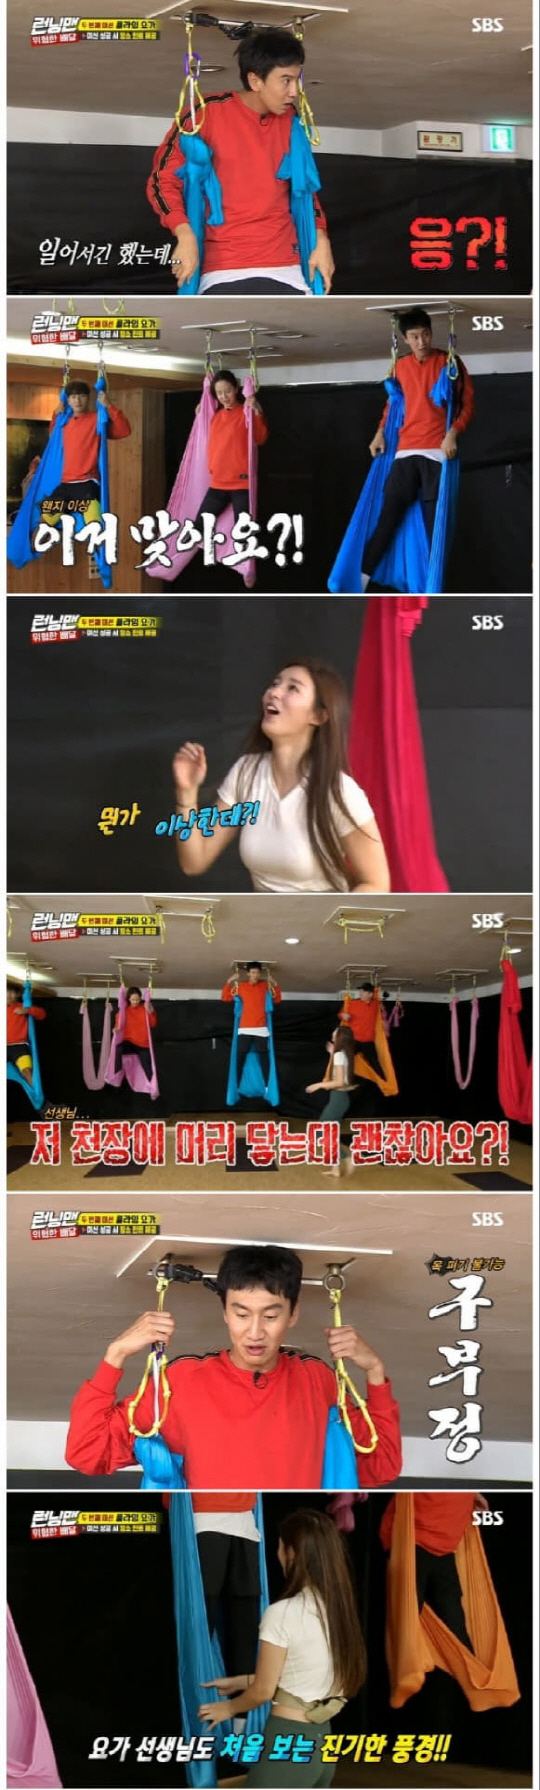 <p>Since I had wanted to appear Running Man for about 2 years ago, I fulfilled my wish in the normal declaration form.</p><p>In the SBS Running Man broadcast on the 16th, a dangerous delivery mission took place if the bag had to be delivered in a predetermined position within 6 hours.</p><p>Members who received hints of address Yonagawa through the drone game moved to flying yoga team and street dance team to get the remaining hints.</p><p>Selecting a flying yoga class and Kim Jong-kook Lee Kwang-soo Yang Se-chan When Son Ji-ho arrived at the practice place, the teacher of this day came out like a butterfly with a hammock. Flying Yoga Every day the lecturer is Muscle Mania s world tournament, Yoo Seung - ok who has entered Oriental first top 5. Looking at Yoo Seung-ok Lee Kwang-soo quickly pushed out Yang Se-chan and occupied the seat next to her and got an eye out.</p><p>When Kim Jong-kook says Your teacher gets a tall natural water lang well, Yoo Seung-ok introduced The key is 172 cm. Lee Kwang-soo introduced the car of their age by introducing a car of his age At what age or 29 years old if difference is between me and 5 years old. In Lee Kwang-soo like this, Yoo Seung-ok said, In fact, it was very wonderfully animated, the head seems to be similar to words, laughing at the iron wall comment.</p><p>Flying yoga is a special type of yoga that works with yoga with suspended hammocks Many high-level actions are difficult for yoga beginners.</p><p>Kim Jong-kook boasted unexpected flexibility despite being the first flying yoga challenge, watching high-level behavior, immediately digested and surprised everyone. Meanwhile, Running Man representative Momuchi Lee Kwang-soo invited rough laughter to be compared with Kim Jong-kook.</p><p>Yoo Seung-ok diverged abruptly in a My Way lesson that teaches stretching and does not care about the members behind holding their own posture. I tried to catch up on the way to Lee Kwang-soo who was saying well done, but because it did not go well, I asked Kim Jong-kook, who asked me to give it up to Kim Jong-kook, good at abruptly.</p><p>Yoo Se - chan s posture is beside Lee Kwang - soo s hands on Lee Kwang - soo s hands Yoo Seung - ok stepped through mistakes of a beginner instructor Lee Kwang - soo searched his hands from the last post Lets see hanging on the other side but in a panic. Yoo Seung-ok said, Its embarrassing, you should not look, you can not see. Lee Kwang-soo refused to laugh with countering Looking at the attitude of the teacher. did.</p><p>In the past Yoo Seung-ok said in January 2016 the SBS Power FM Old School of Kim Chang-nyeol wants to appear in SBS Sunday is Good - Running Man (Running Man below).</p><p>At that time, Yoo Seung-ok expressed confidence that someone will be able to prevent my nameplayer from turning away and not paying off, and I want to remove Ji Seok-jins tag from among members of Running Man . Also, It would be nice to be a team with Kim Jong-kook, which is more powerful than me, says something about love calls. It fulfilled my wish for the first time in two years. The production team of Running Man has negotiated with Yoo Seung-ok, who played the role of our flying yoga teacher in the past 2015 MBC drama Queens Flower.</p><p>Meanwhile, Yoo Seung-ok has recently appeared in the university road drama Health Club in Jamaica and has expanded the area as an actor.</p>